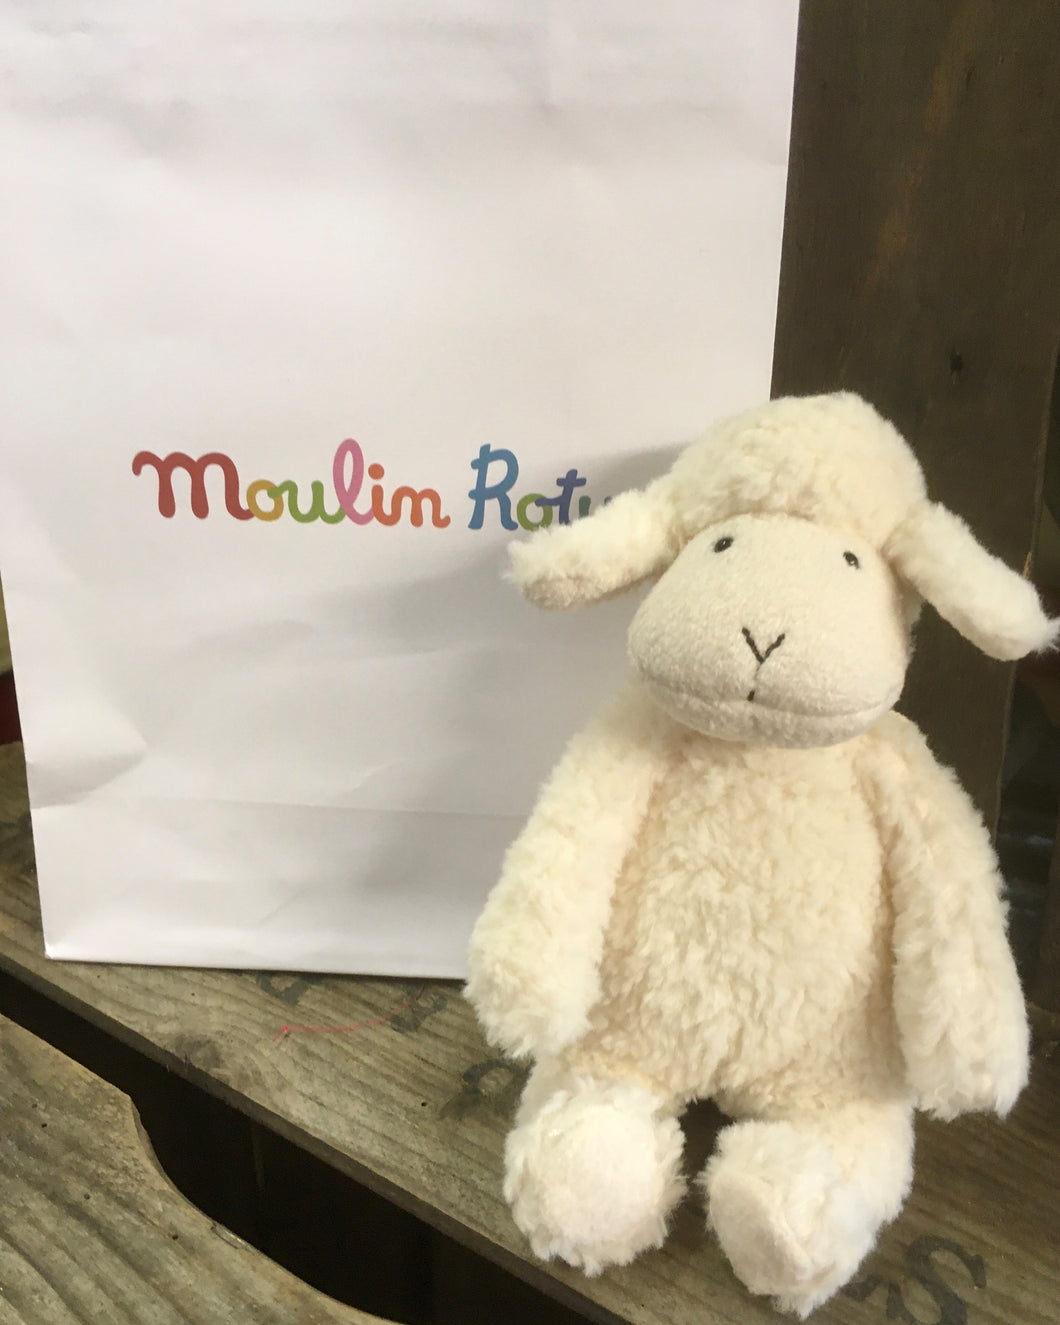 Moulin Roty - Sheep